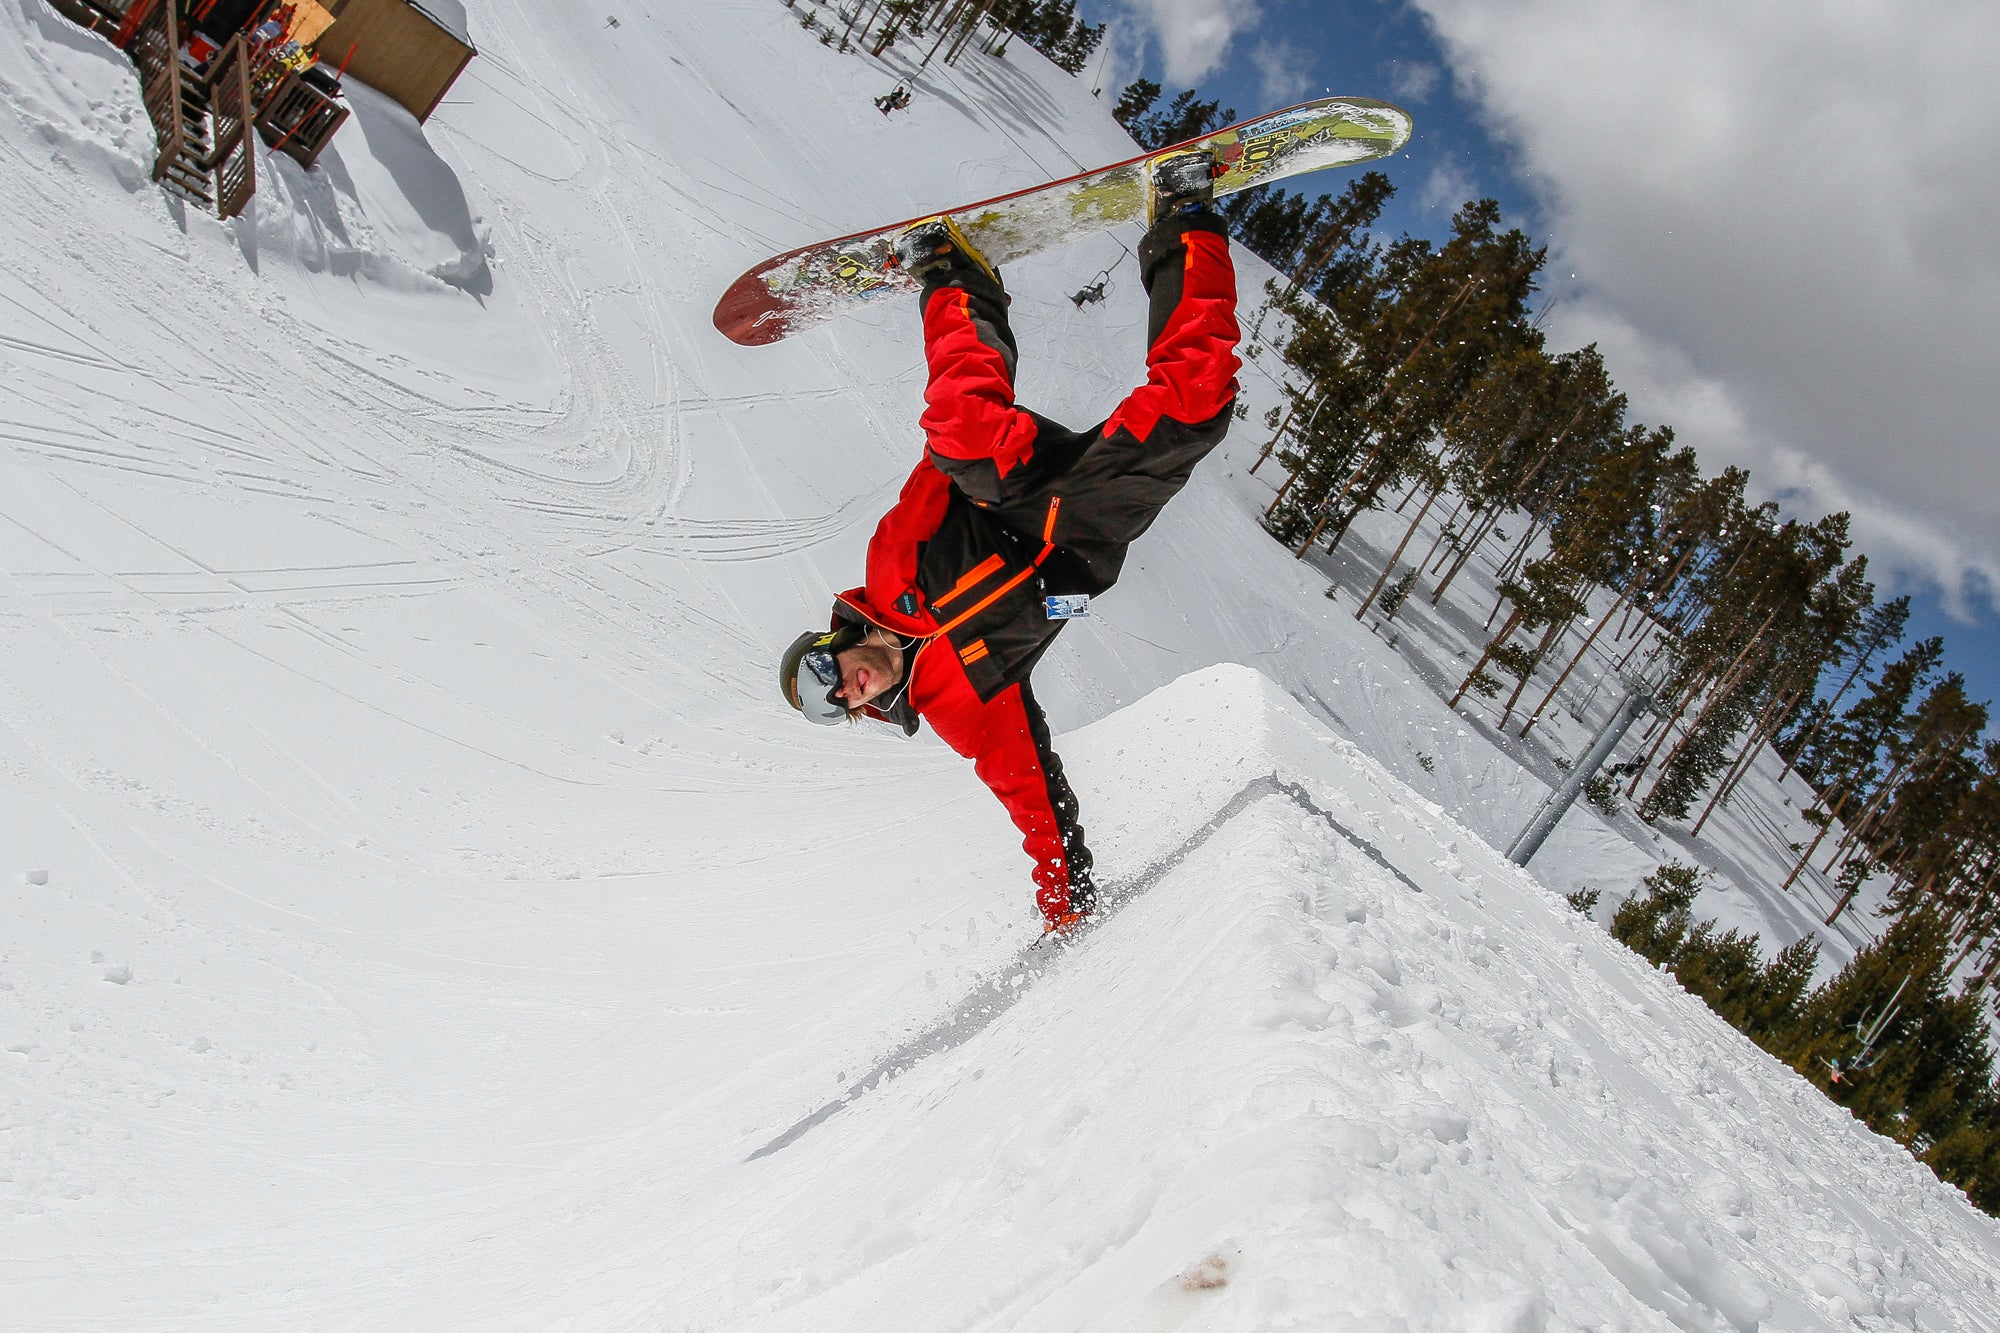 Ricky Bates snowboarding in the Tiro Mono Suit